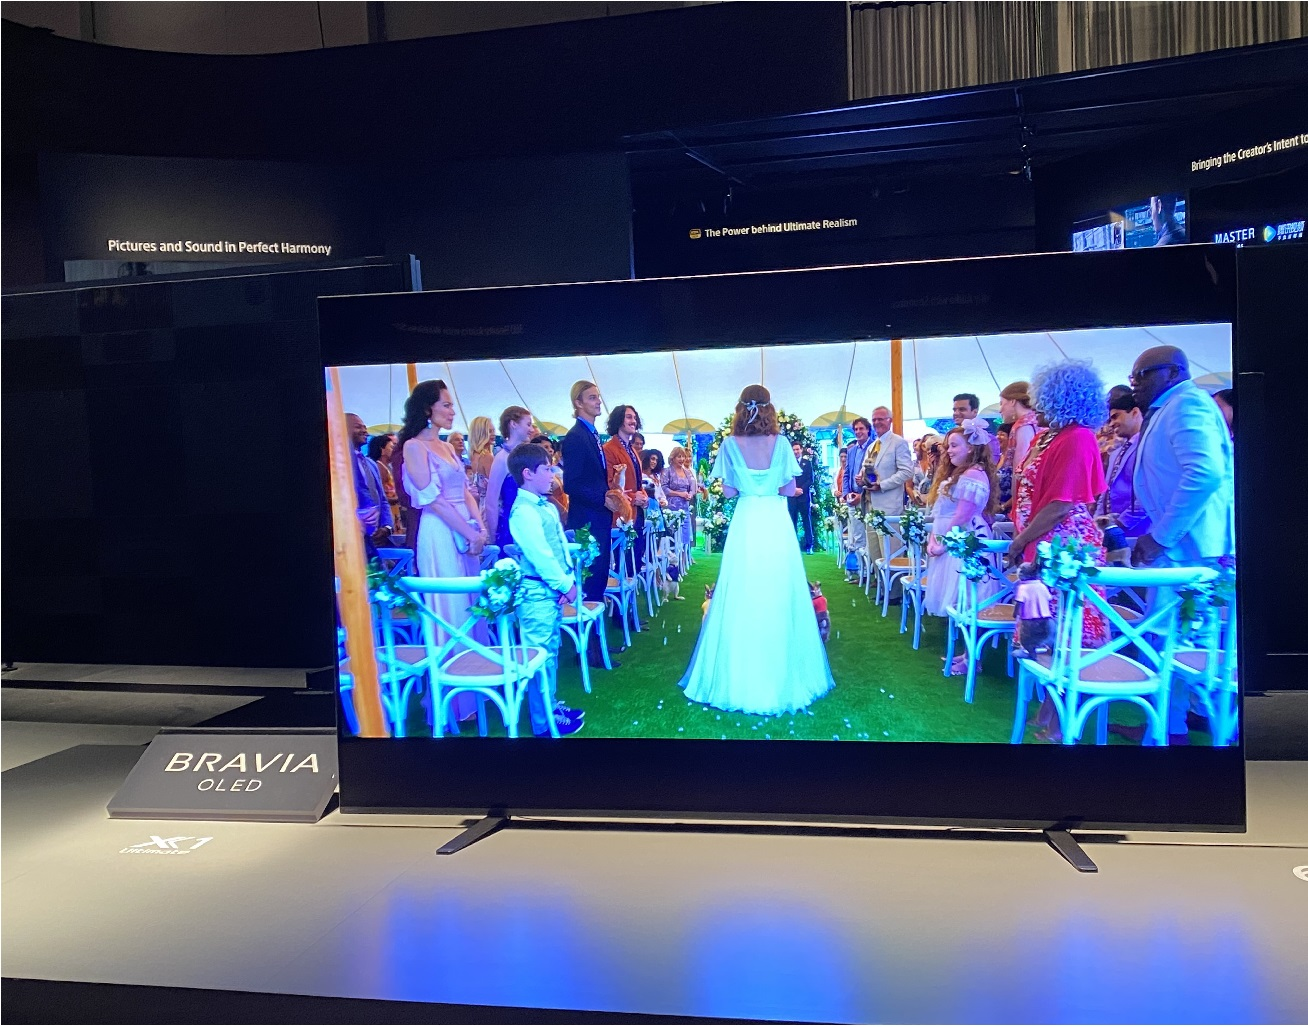 image of the new Sony A8H TV model